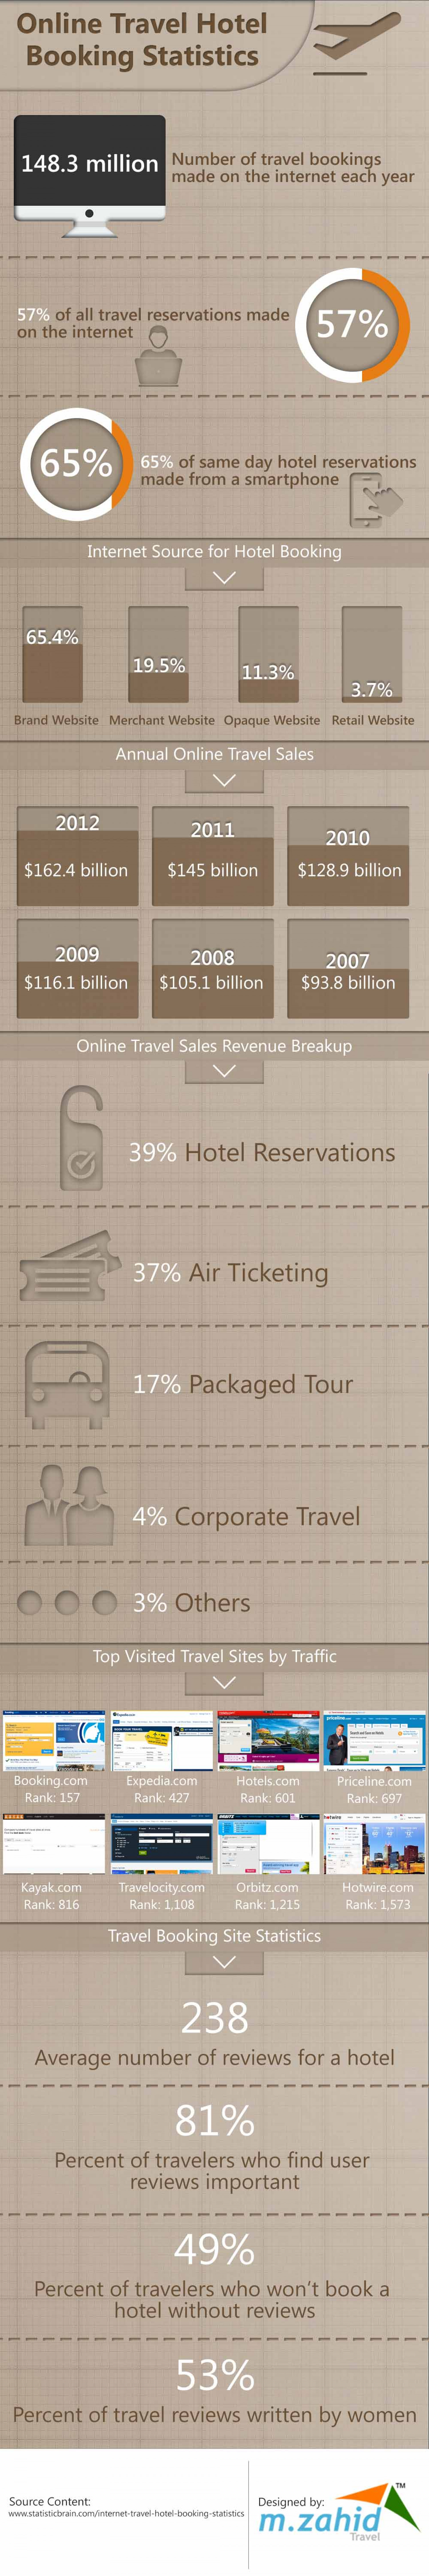 Online Travel Hotel booking Statistics Infographic